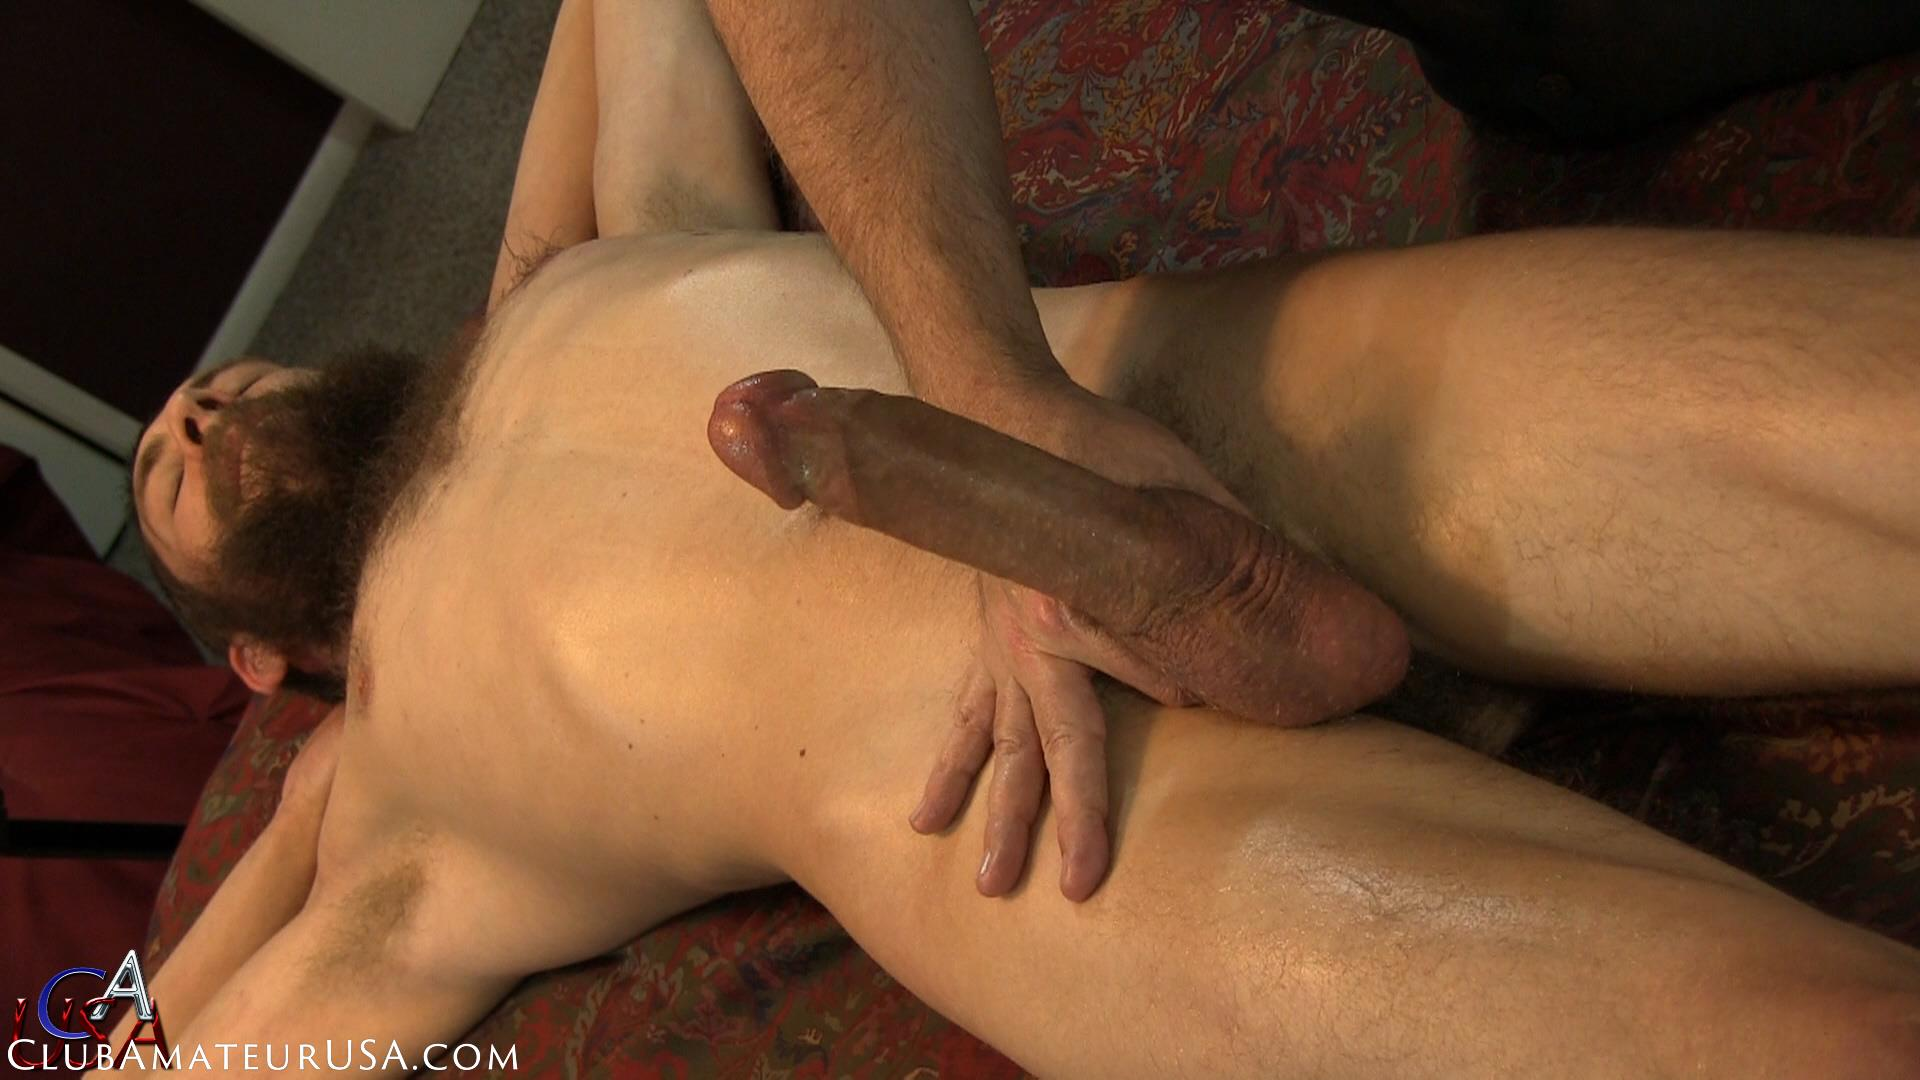 Club Amateur USA Wyatt Straight Redneck Getting Jerked Off Amateur Gay Porn 23 Amateur Straight Redneck Gets Jerked Off By Another Guy